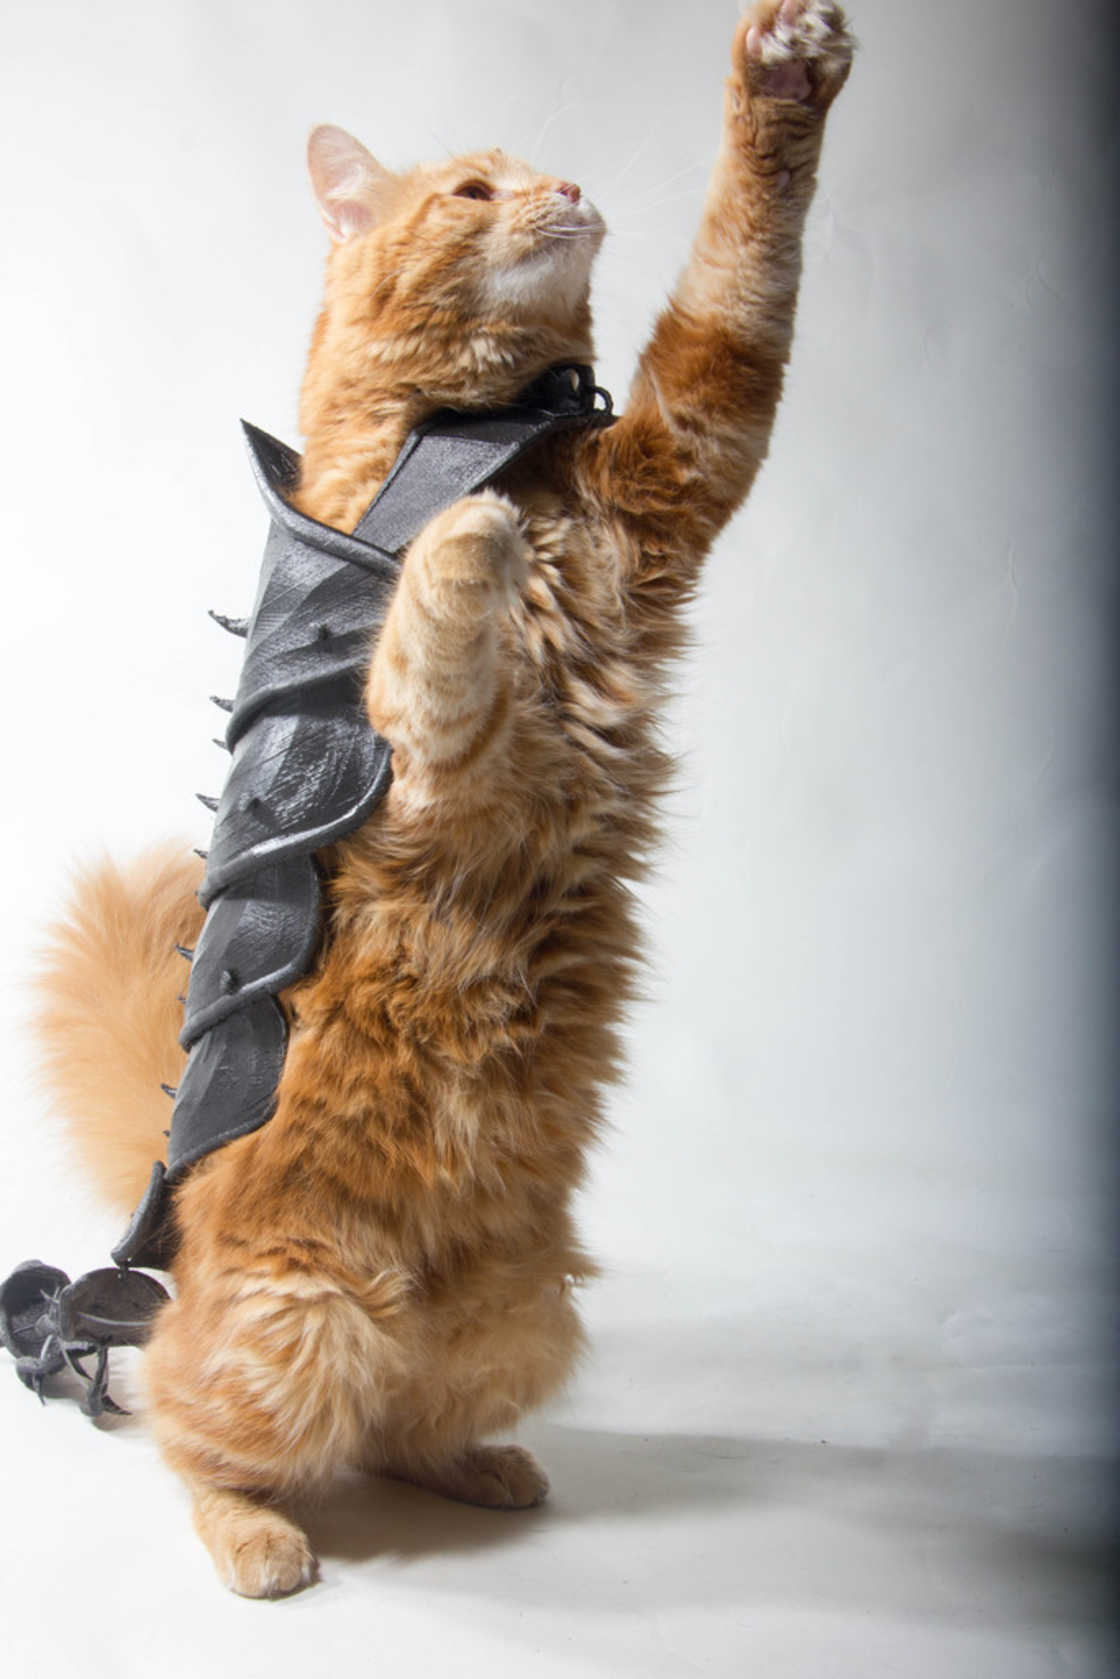 armure-pour-chat-15